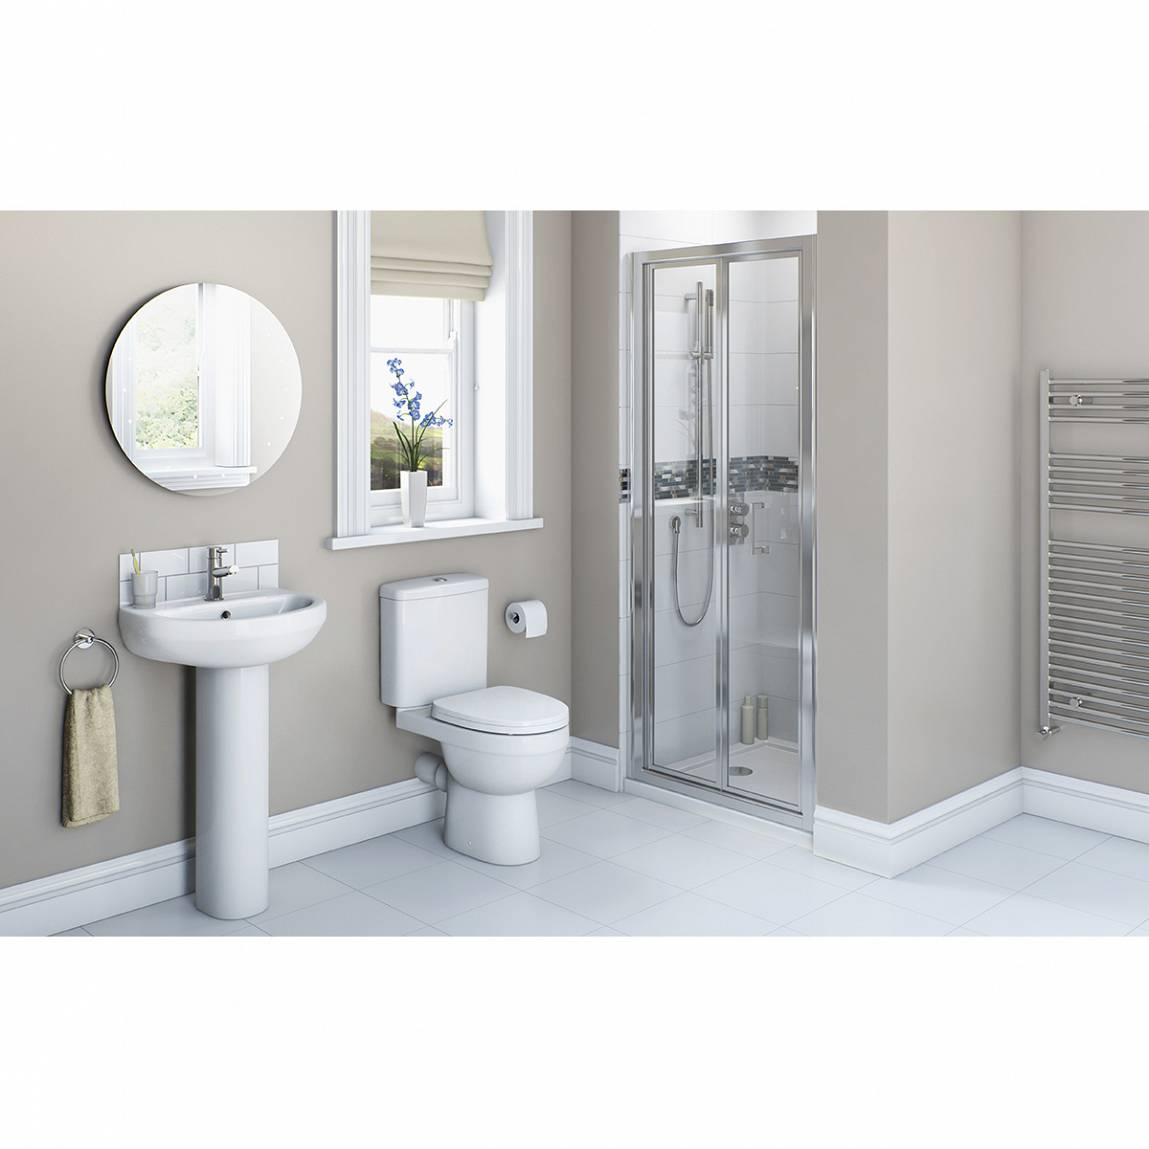 Image of Energy Bathroom set with Bifold Shower Door 900